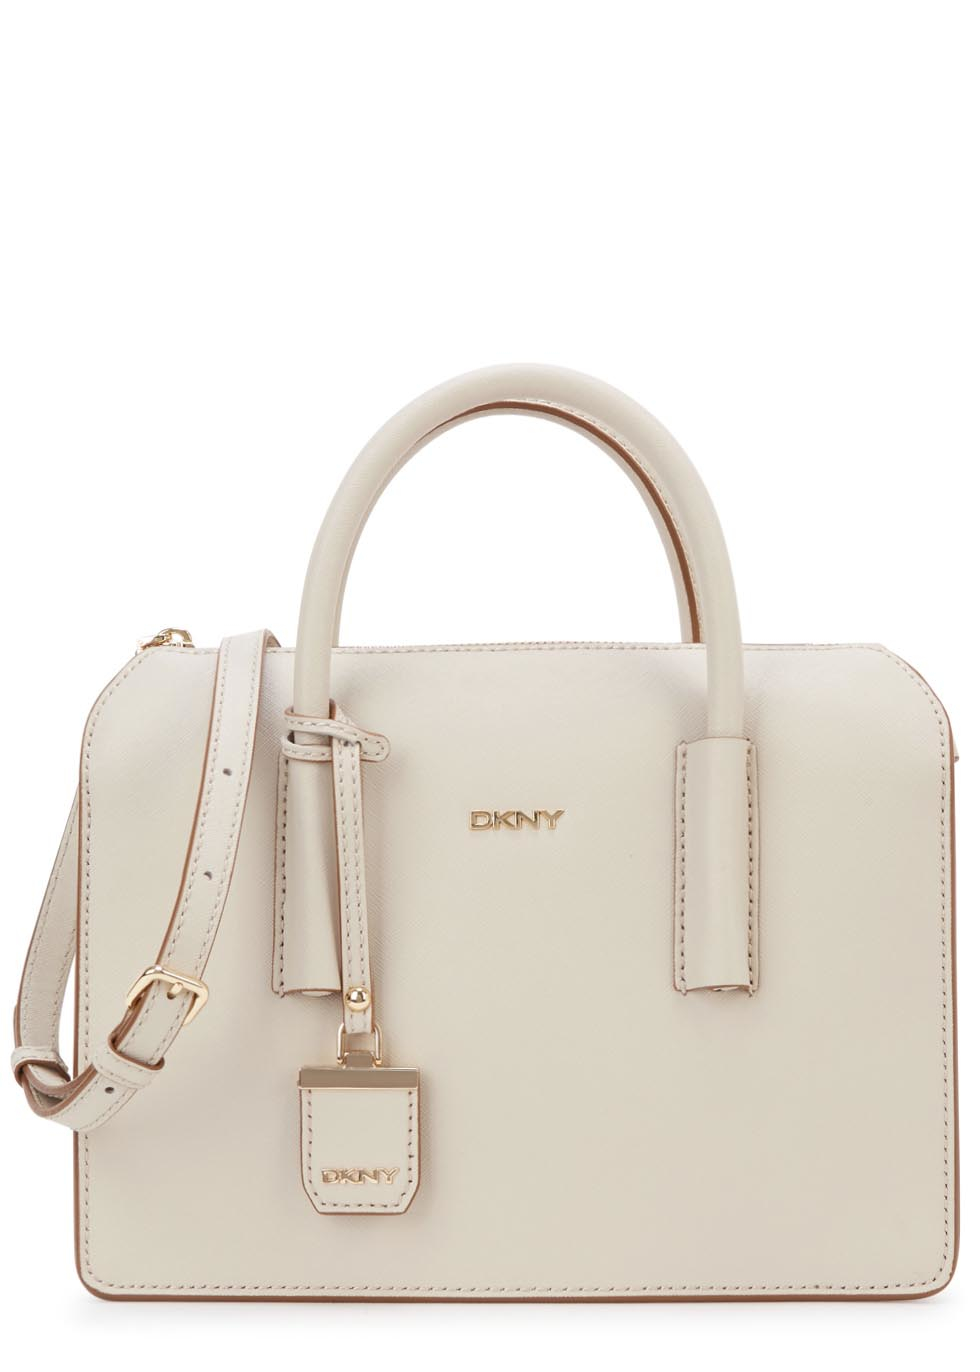 128ad34bb1 DKNY Bryant Park Cream Leather Tote in Natural - Lyst